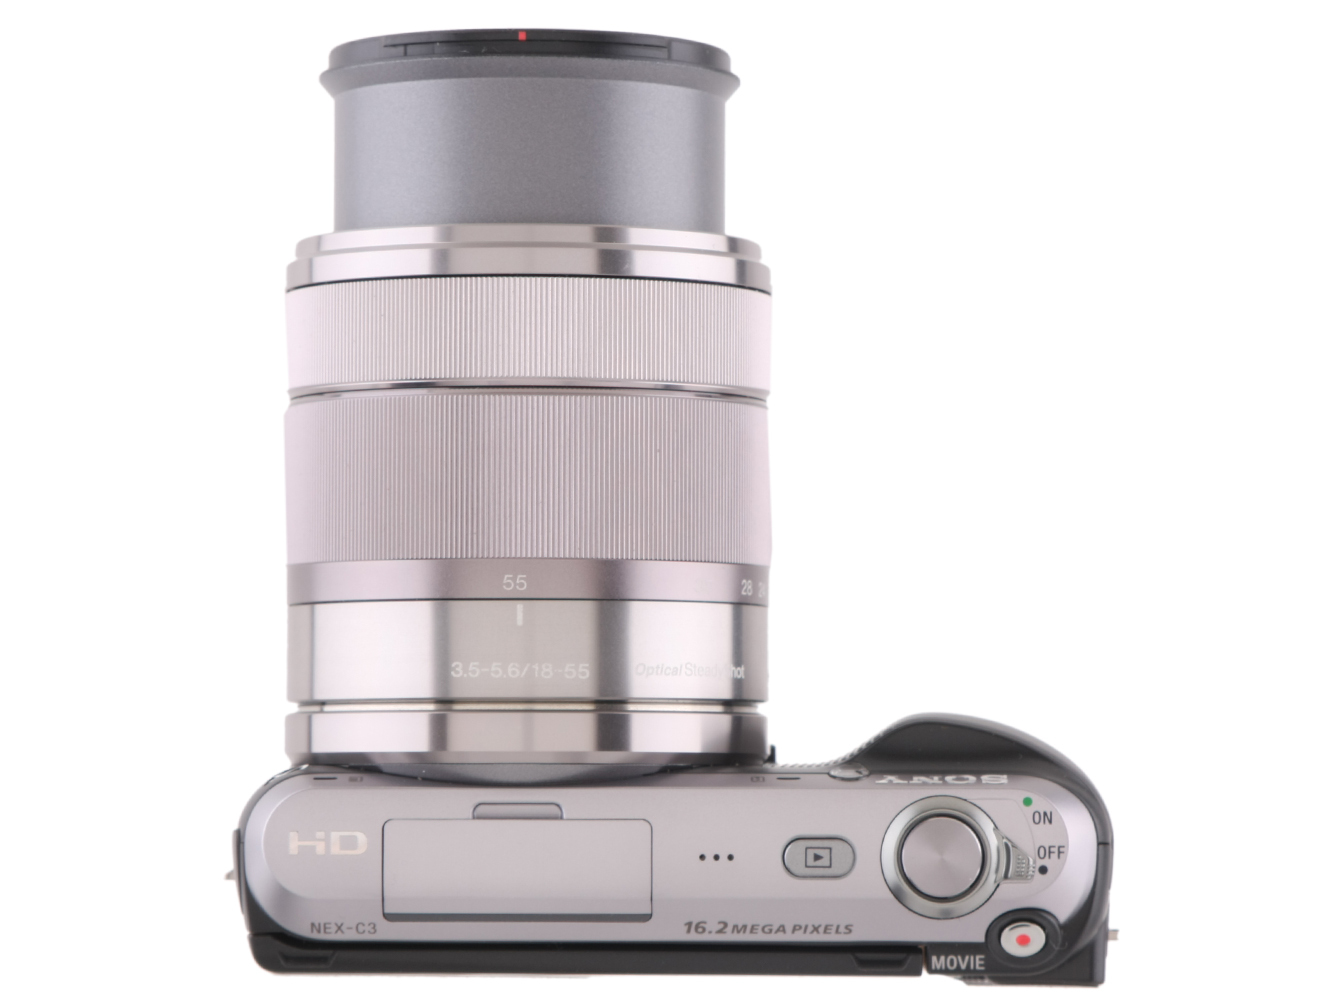 Sony's NEX-C3 is among the cameras supported by Lightroom 3.5, now a release candidate.